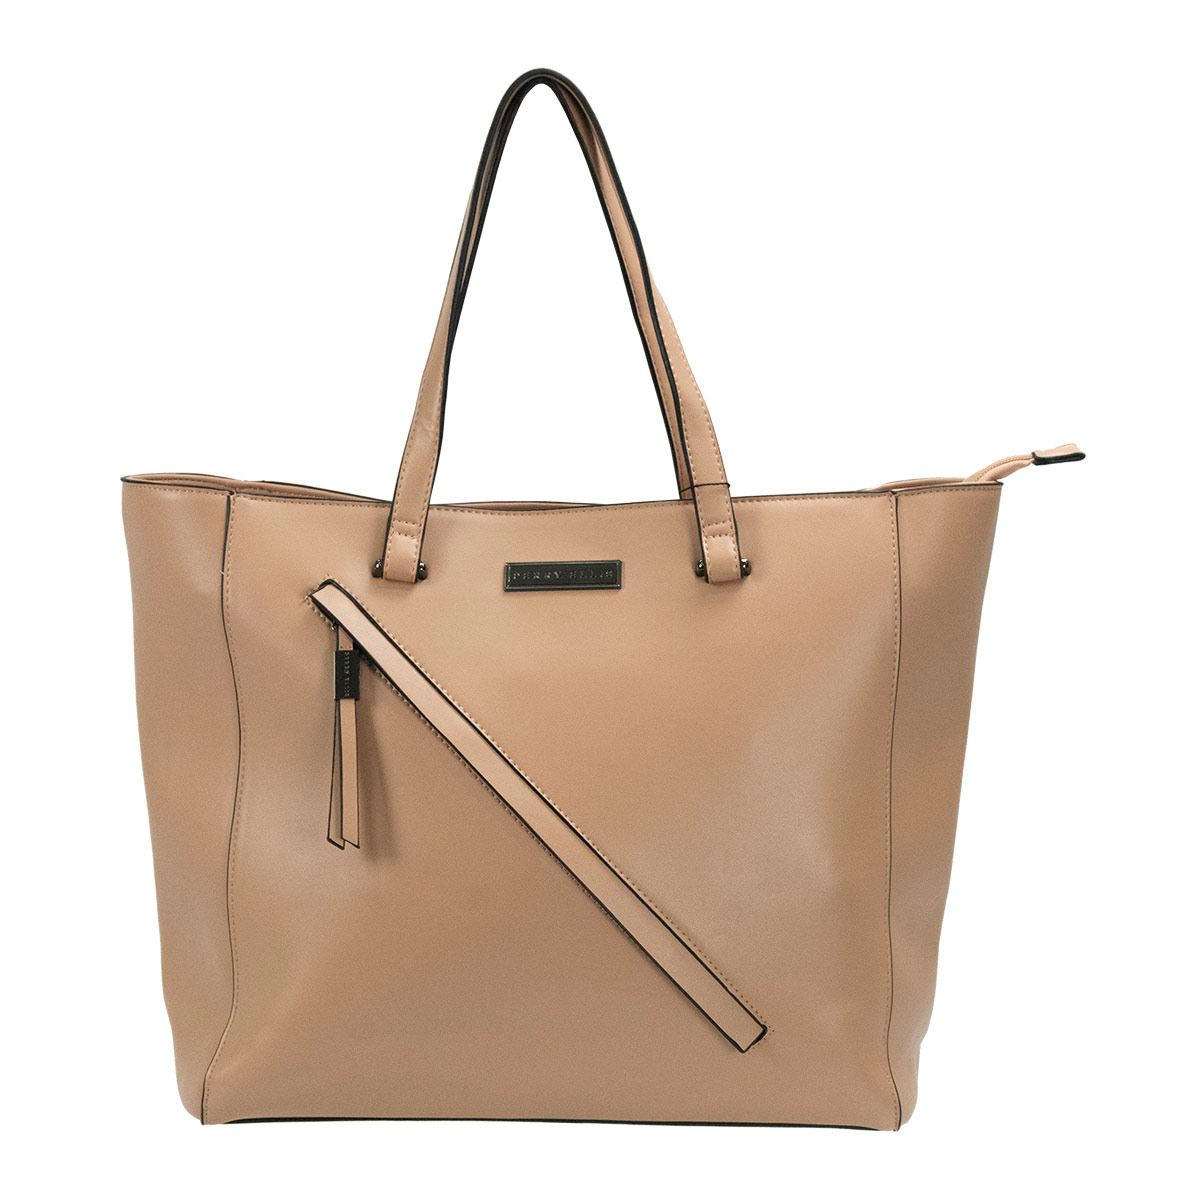 Bolso Tote Perry Ellis Color Blush Modelo A01884